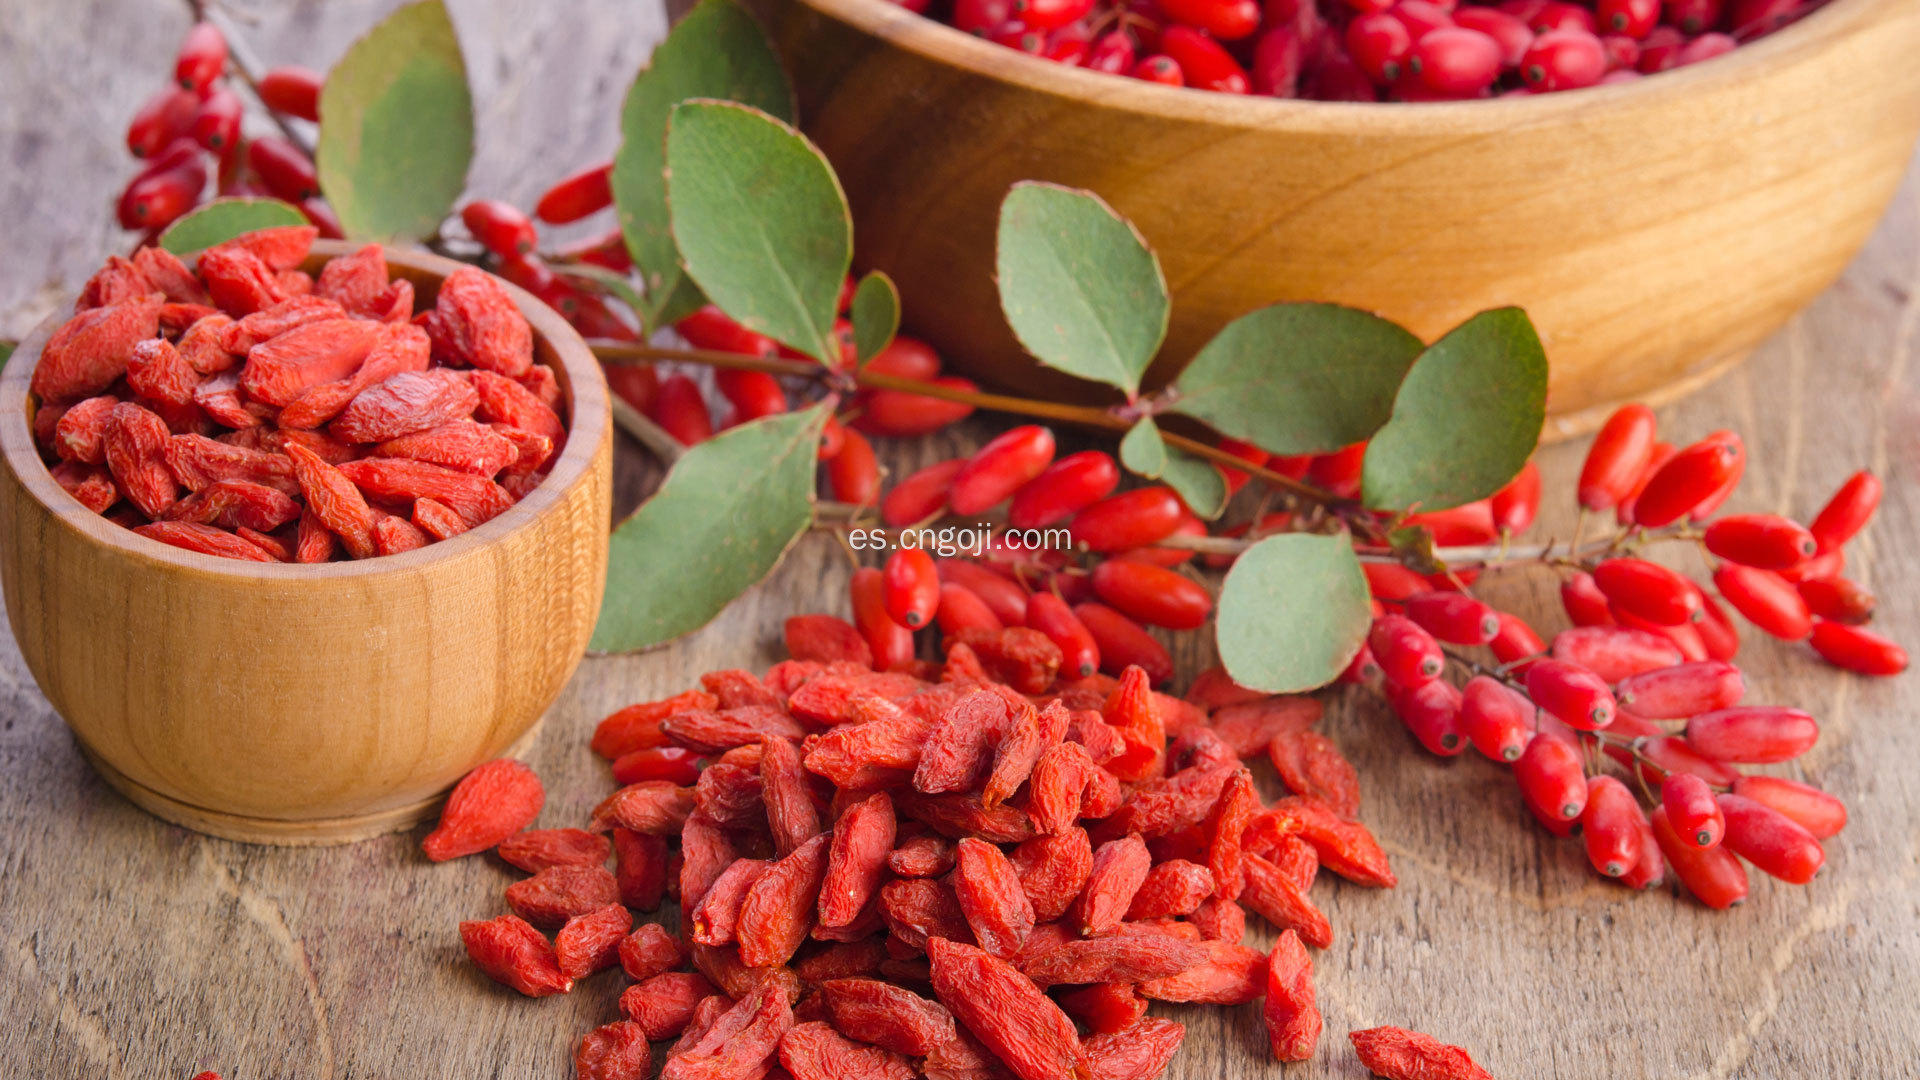 polvo de extracto de goji berry goji guarana